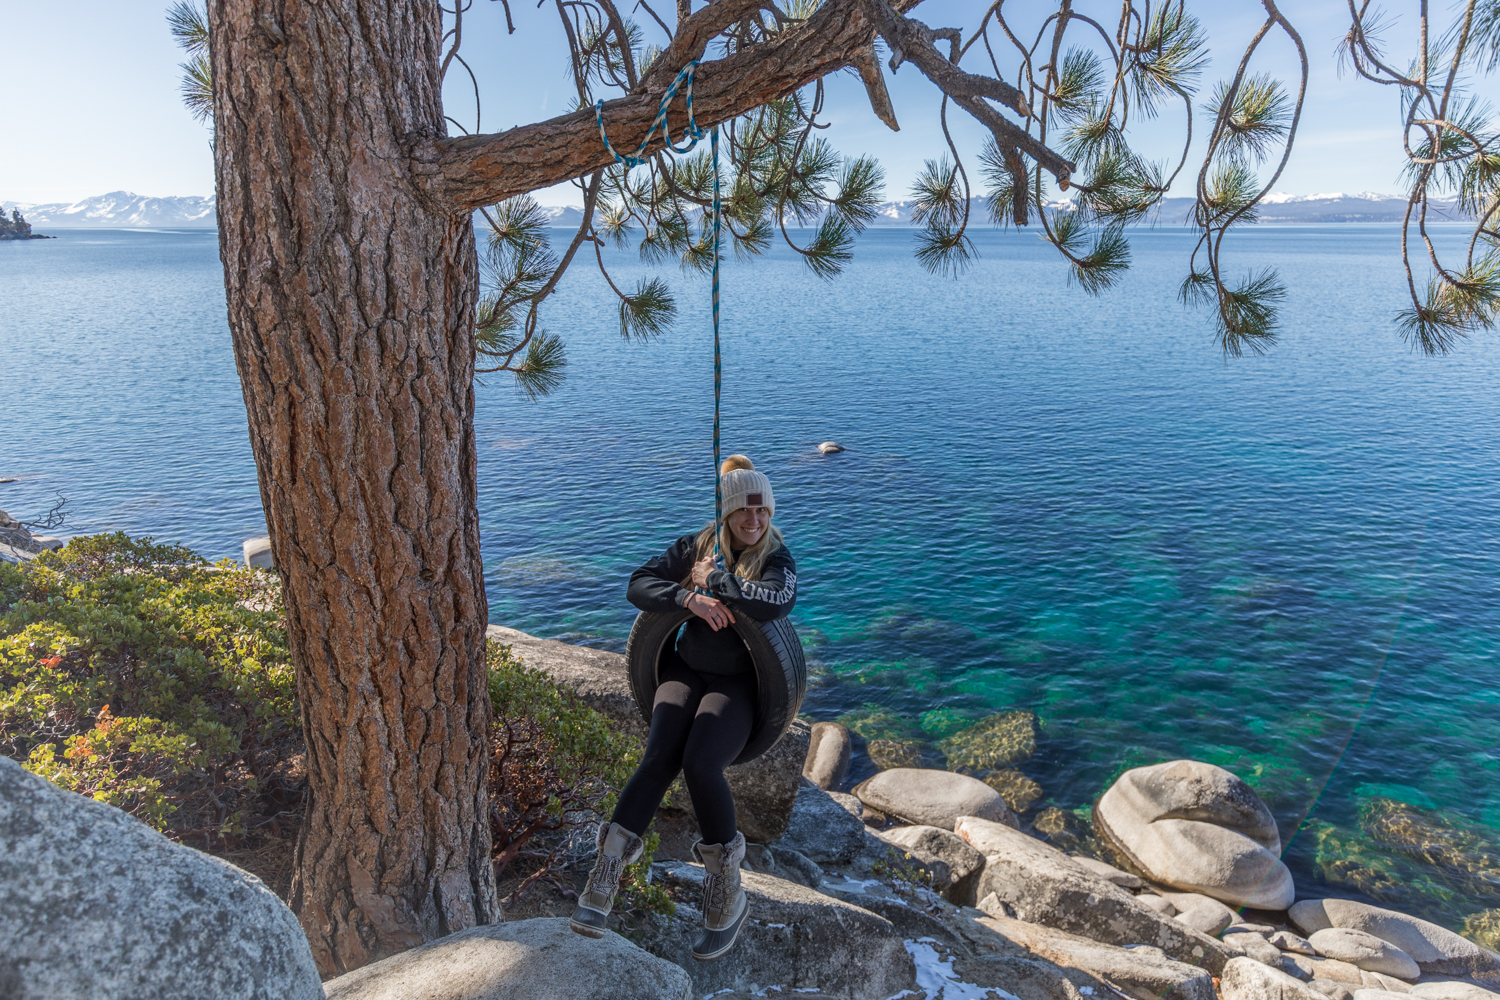 Catherine Chicotka | Outdoor Photographer and Travel Writer